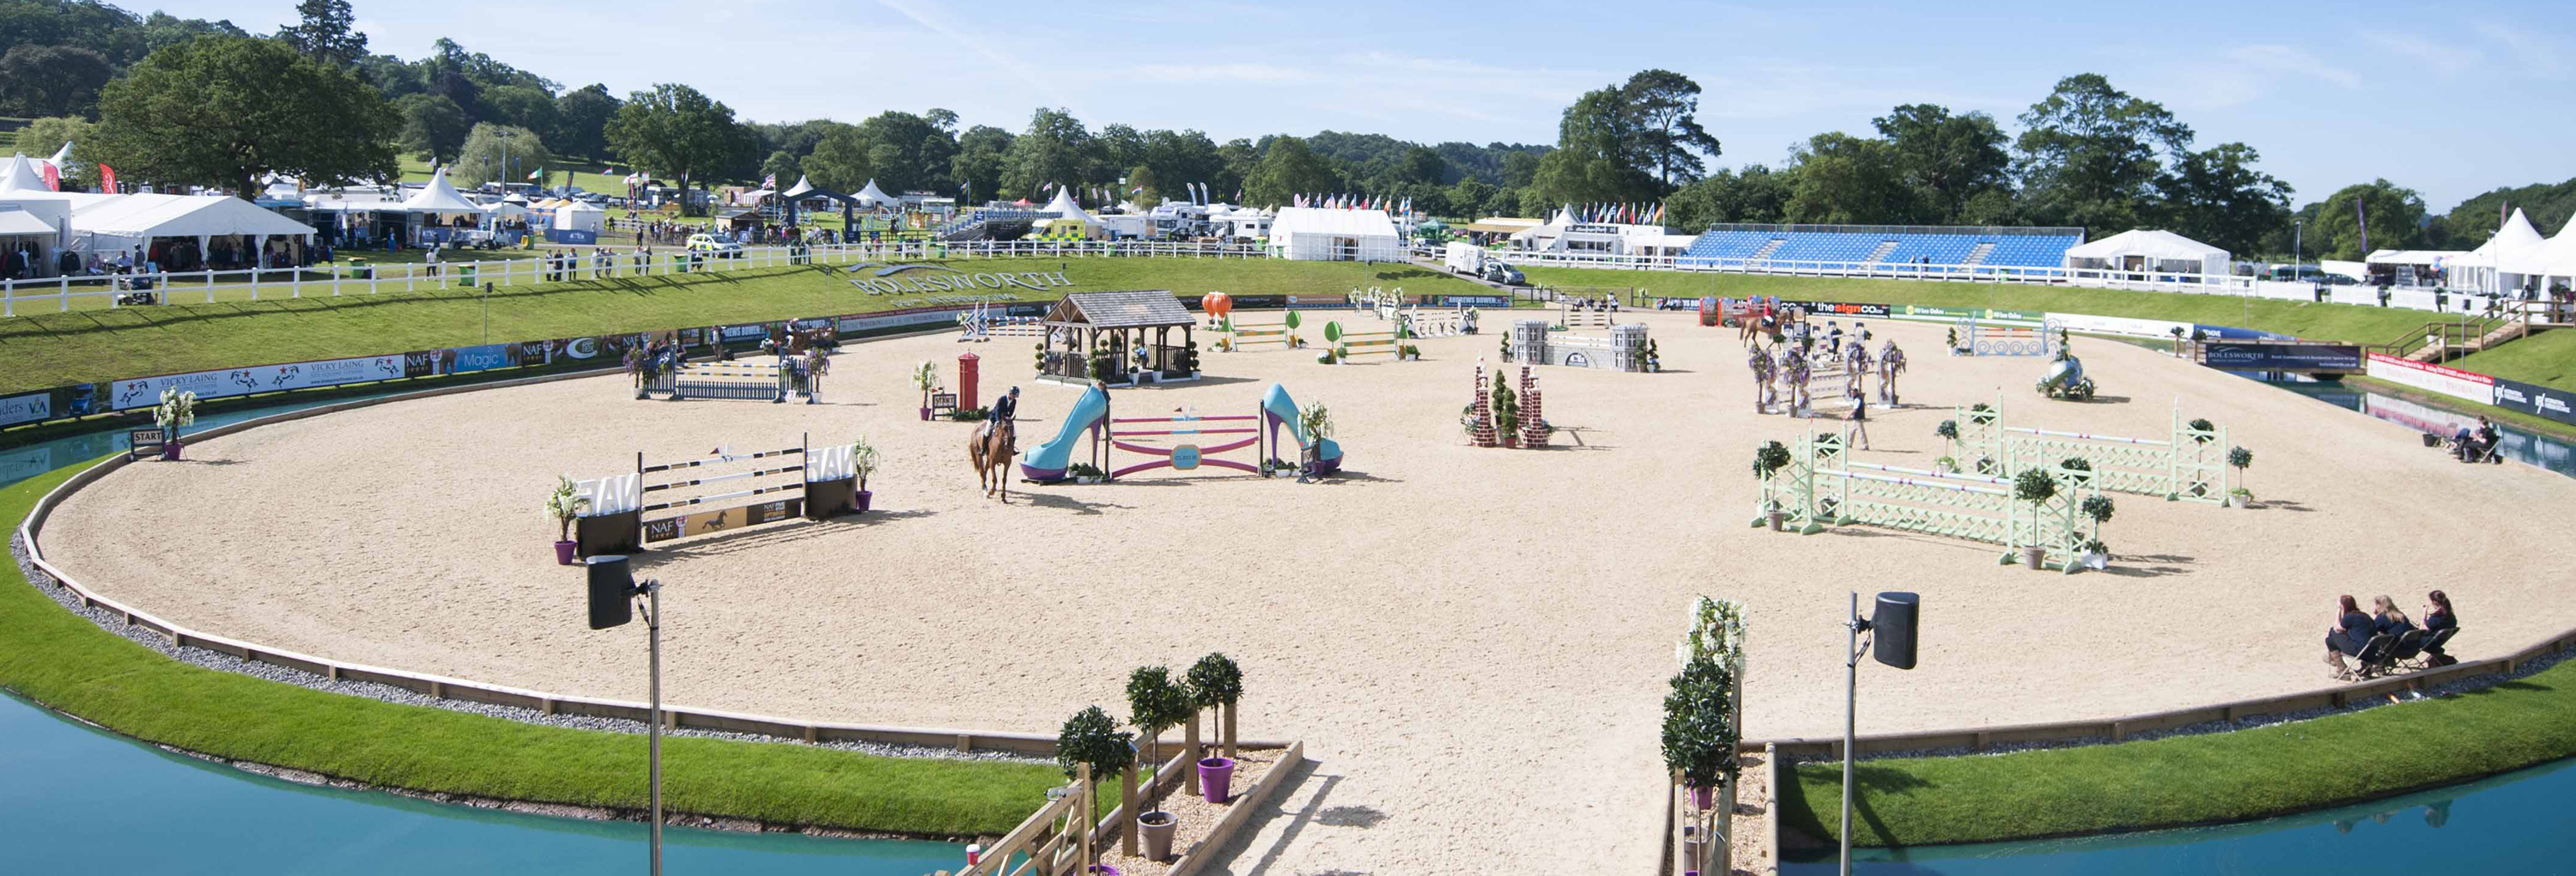 Equitop Bolesworth Young Horse Championships 2019